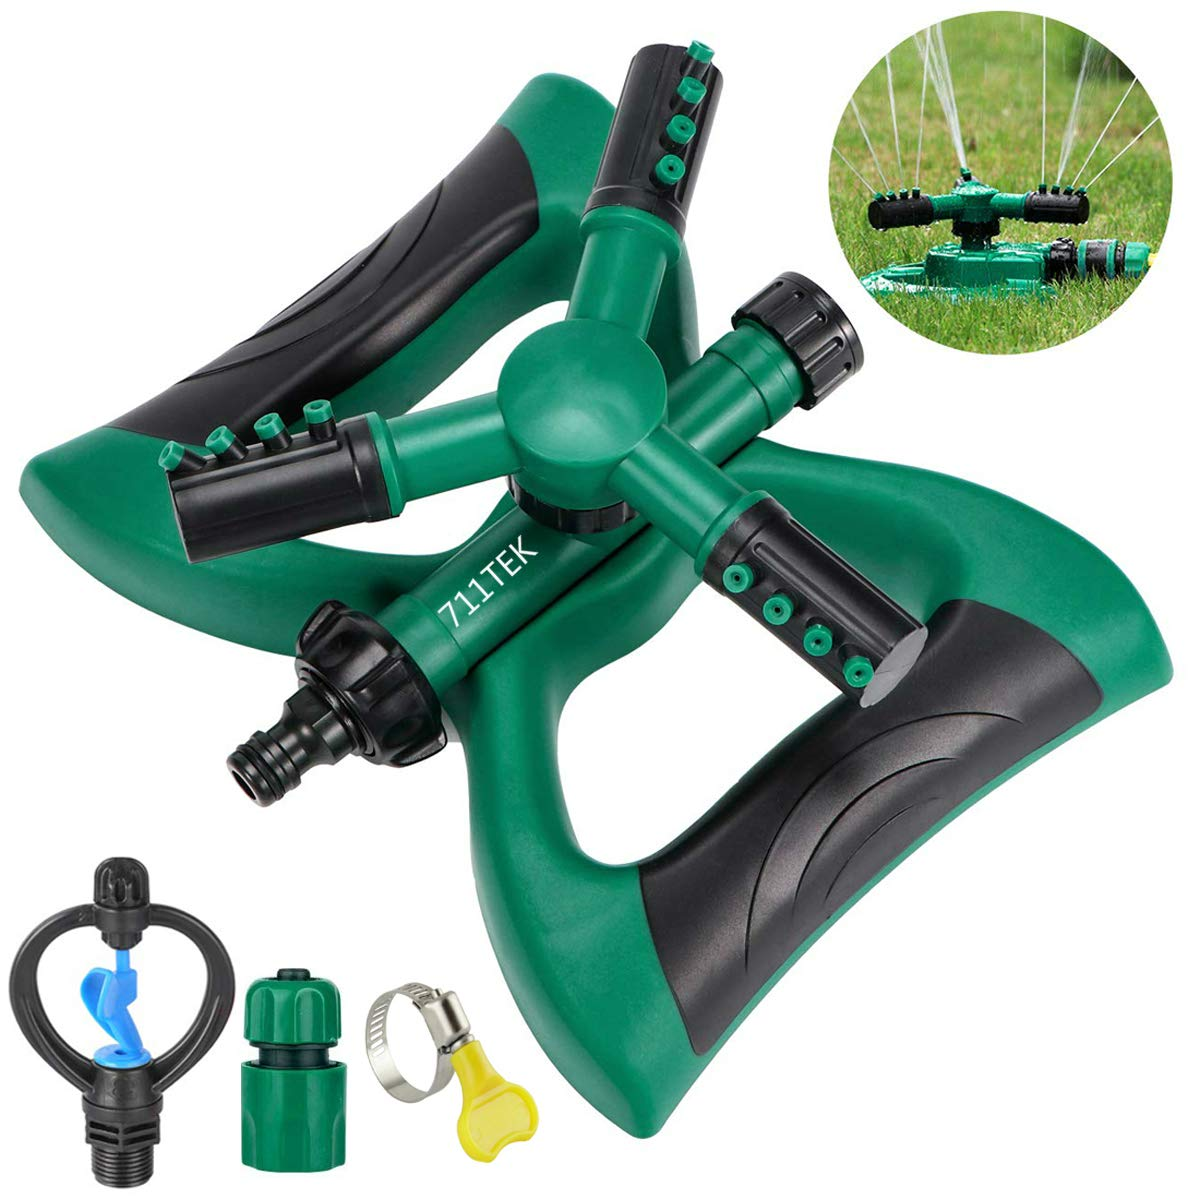 711TEK Garden Sprinkler Automatic Lawn Sprinkler Water Sprinkler Lawn Irrigation System 360 Degree Rotating Adjustable Oscillating Sprinkler for Garden Lawn Yard Kids (Sprinkler with Extra Head)